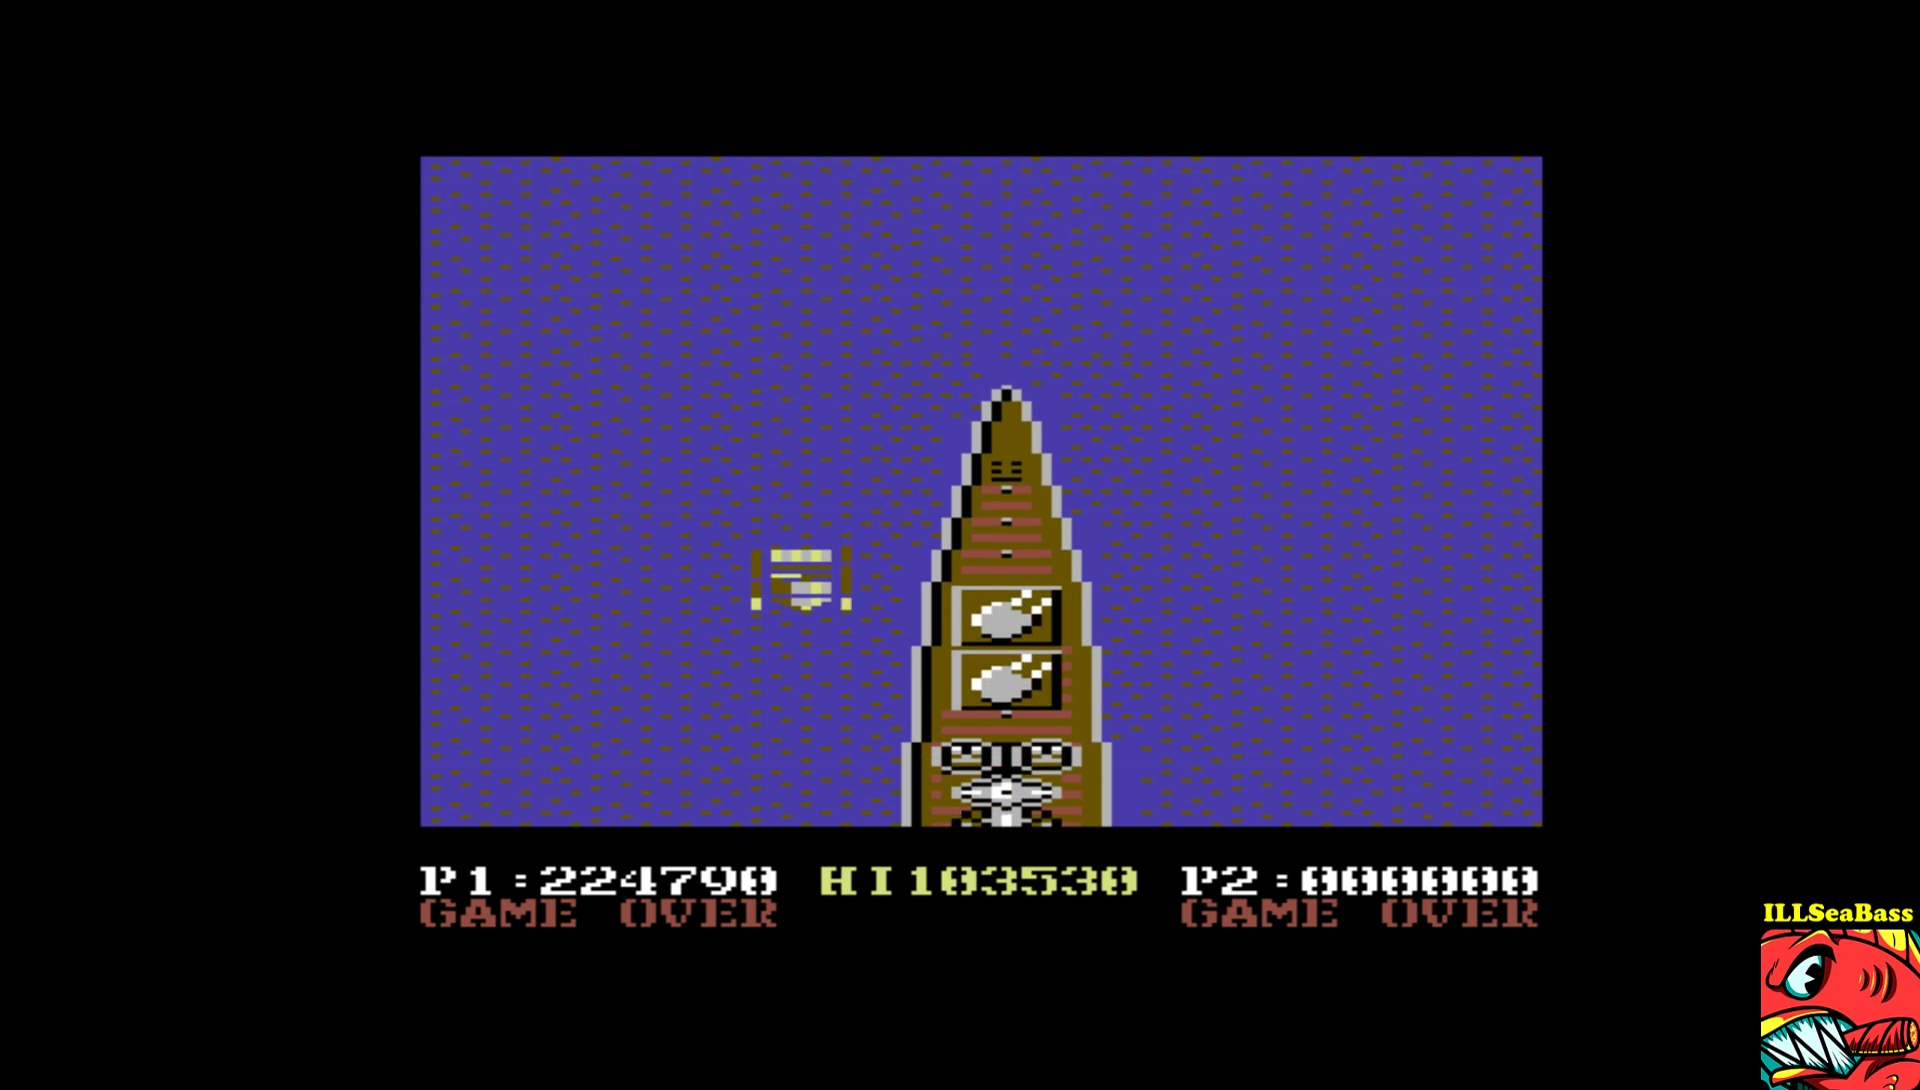 ILLSeaBass: 1943: The Batttle Of Midway (Commodore 64 Emulated) 224,790 points on 2017-04-17 21:10:30